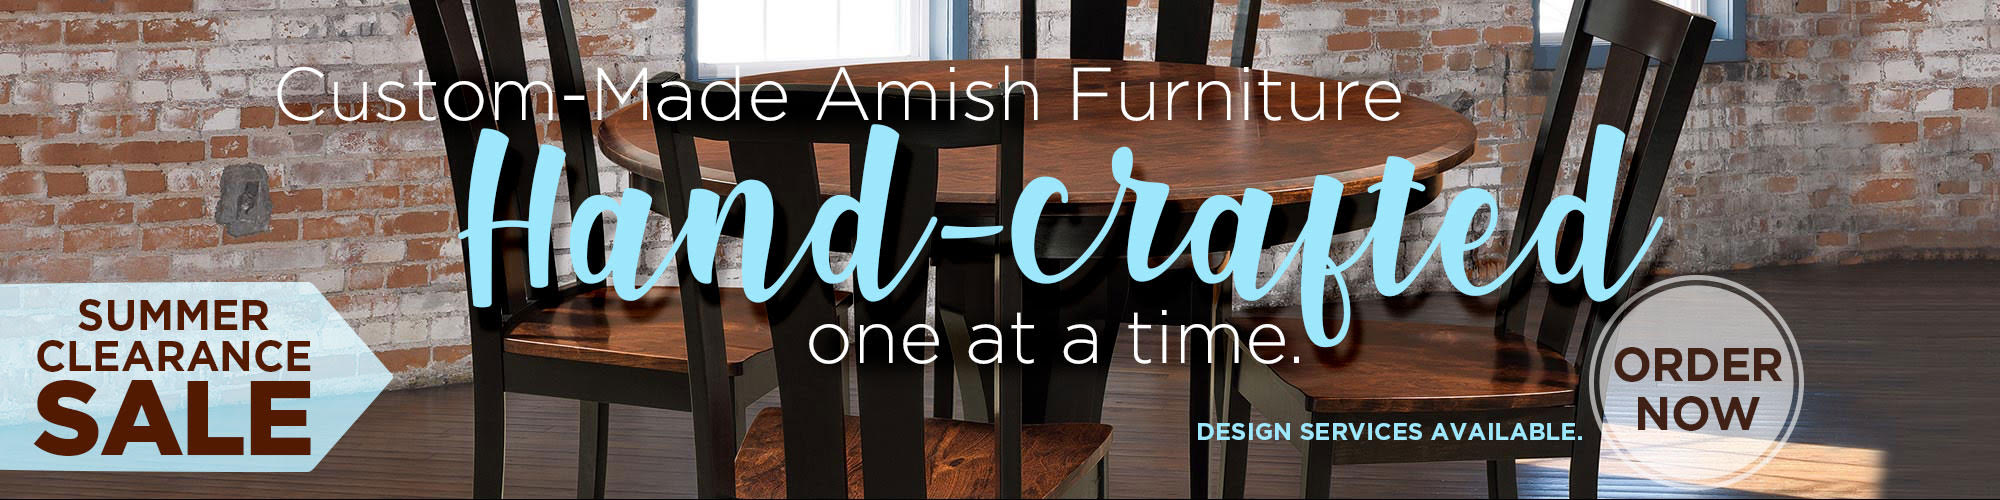 Amish Furniture Summer2020 Clearence Sale_website banner